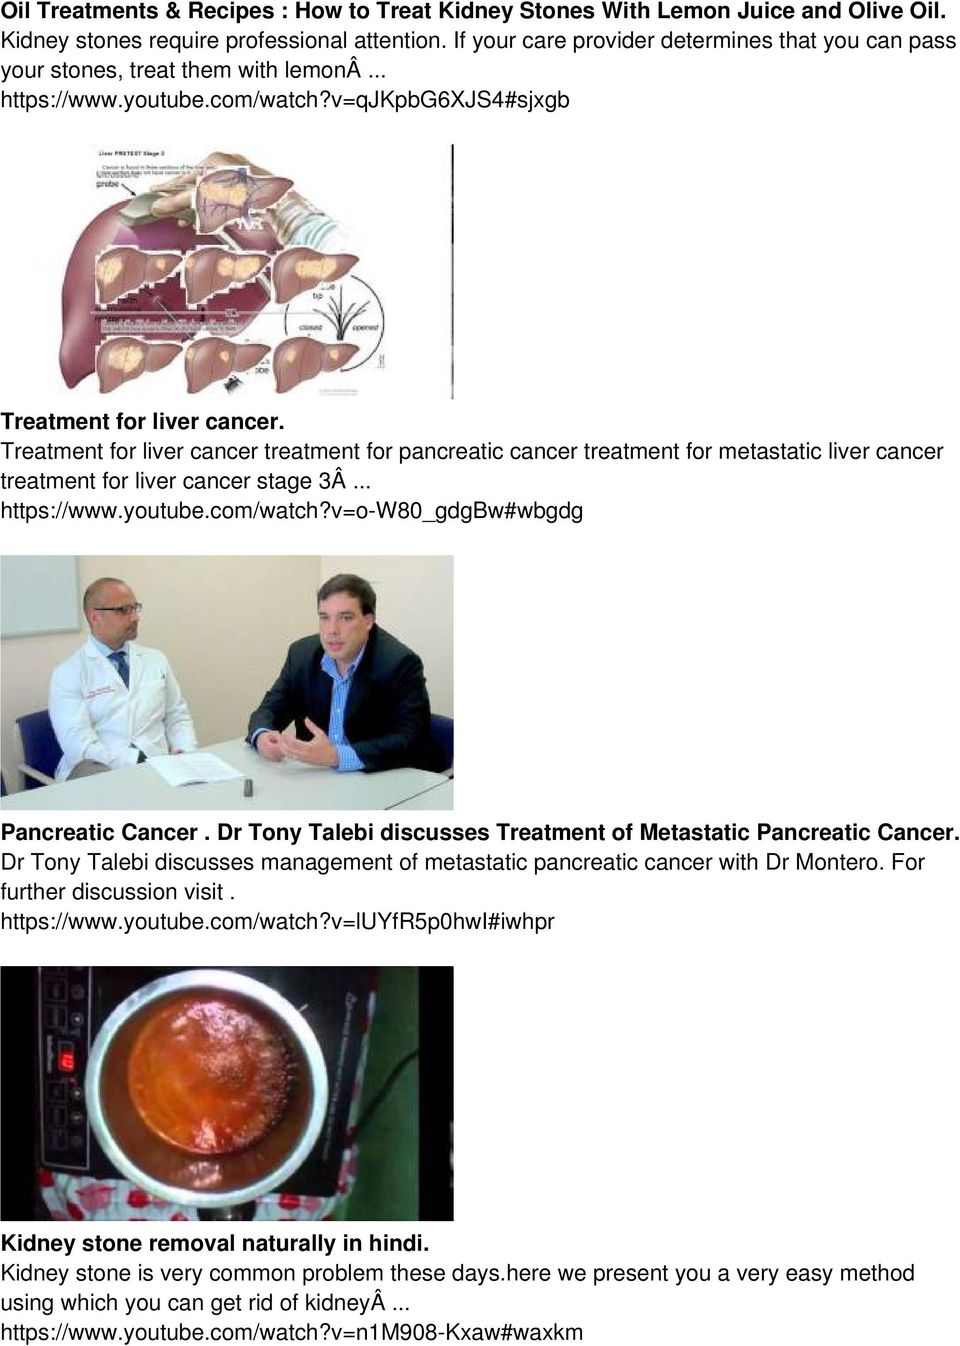 Treatment for liver cancer treatment for pancreatic cancer treatment for metastatic liver cancer treatment for liver cancer stage 3Â... https://www.youtube.com/watch?